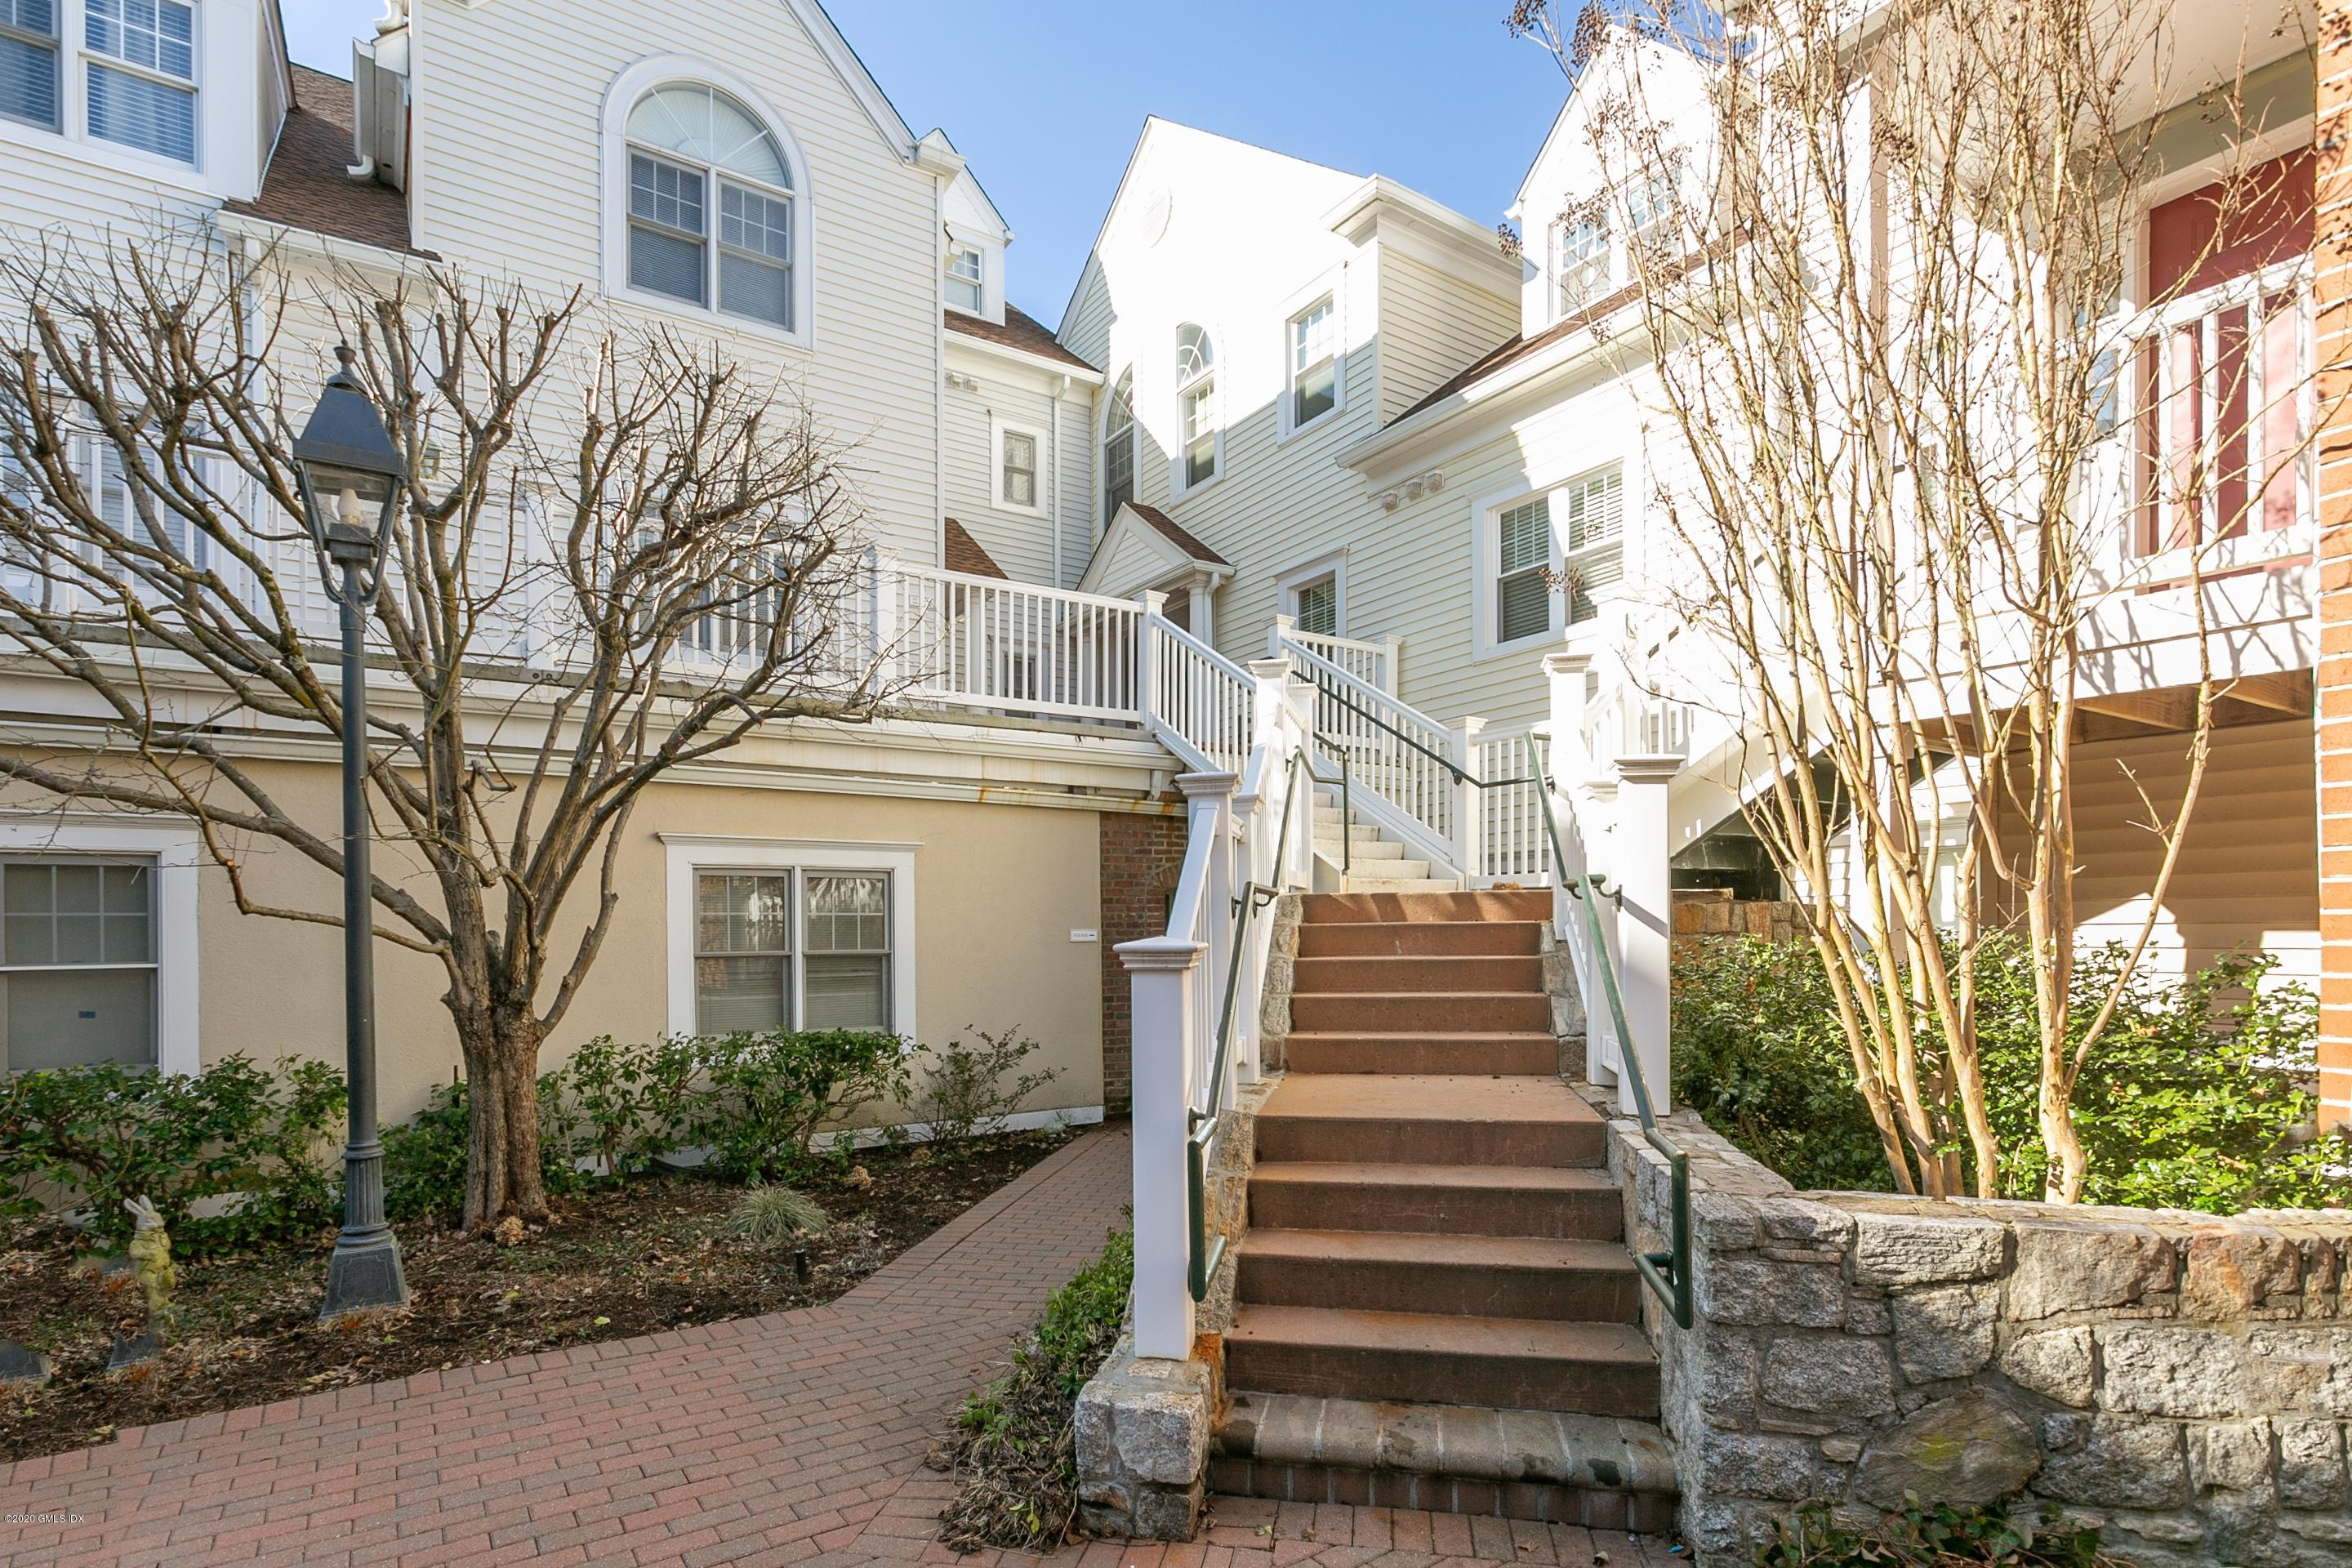 51 Forest Avenue,Old Greenwich,Connecticut 06870,3 Bedrooms Bedrooms,3 BathroomsBathrooms,Condominium,Forest,108610